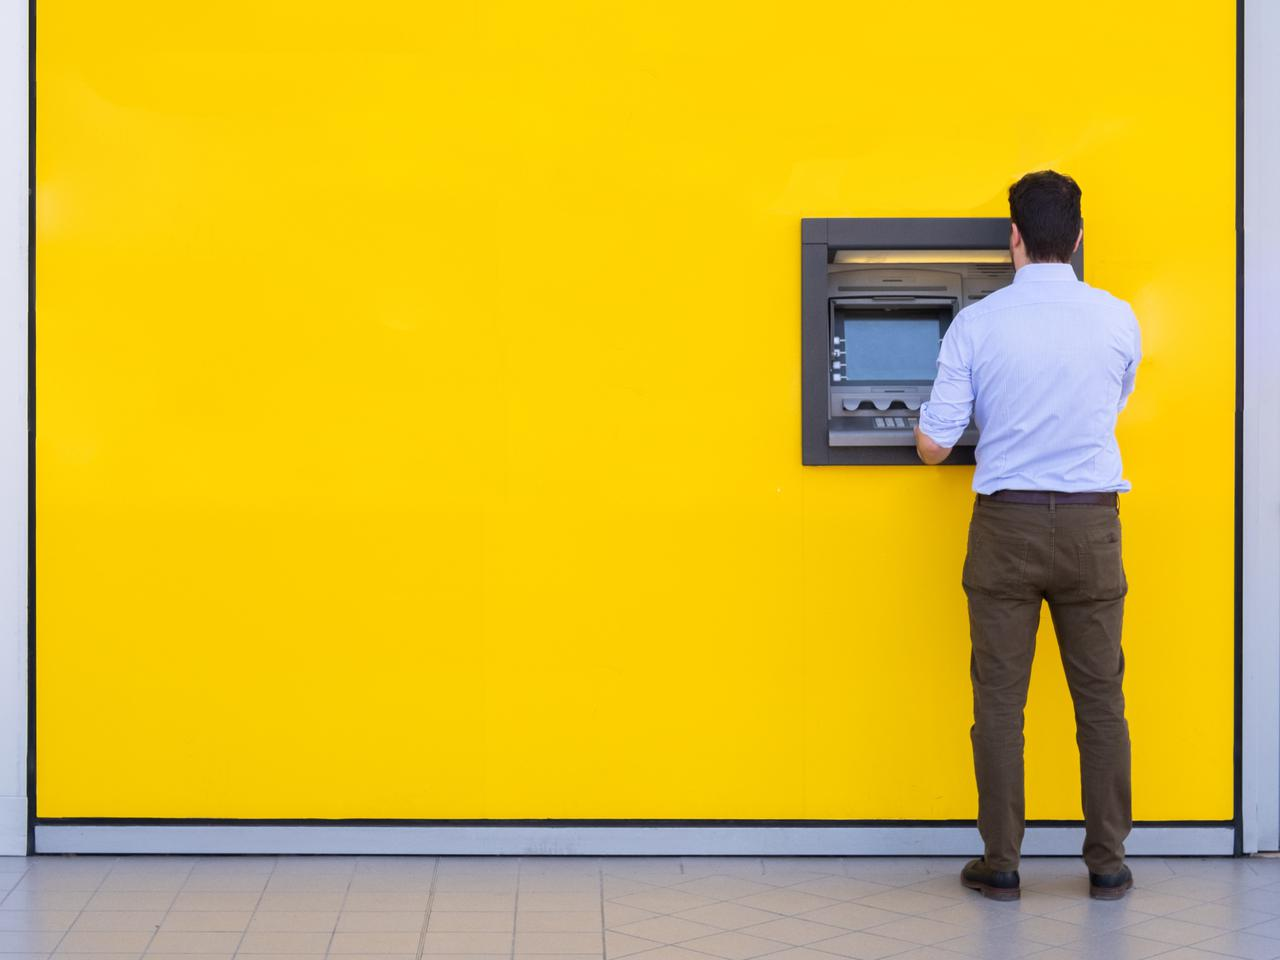 A man using an ATM that's installed in a yellow wall. One of the many reasons to purchase an ATM machine is walk-by traffic just like this!